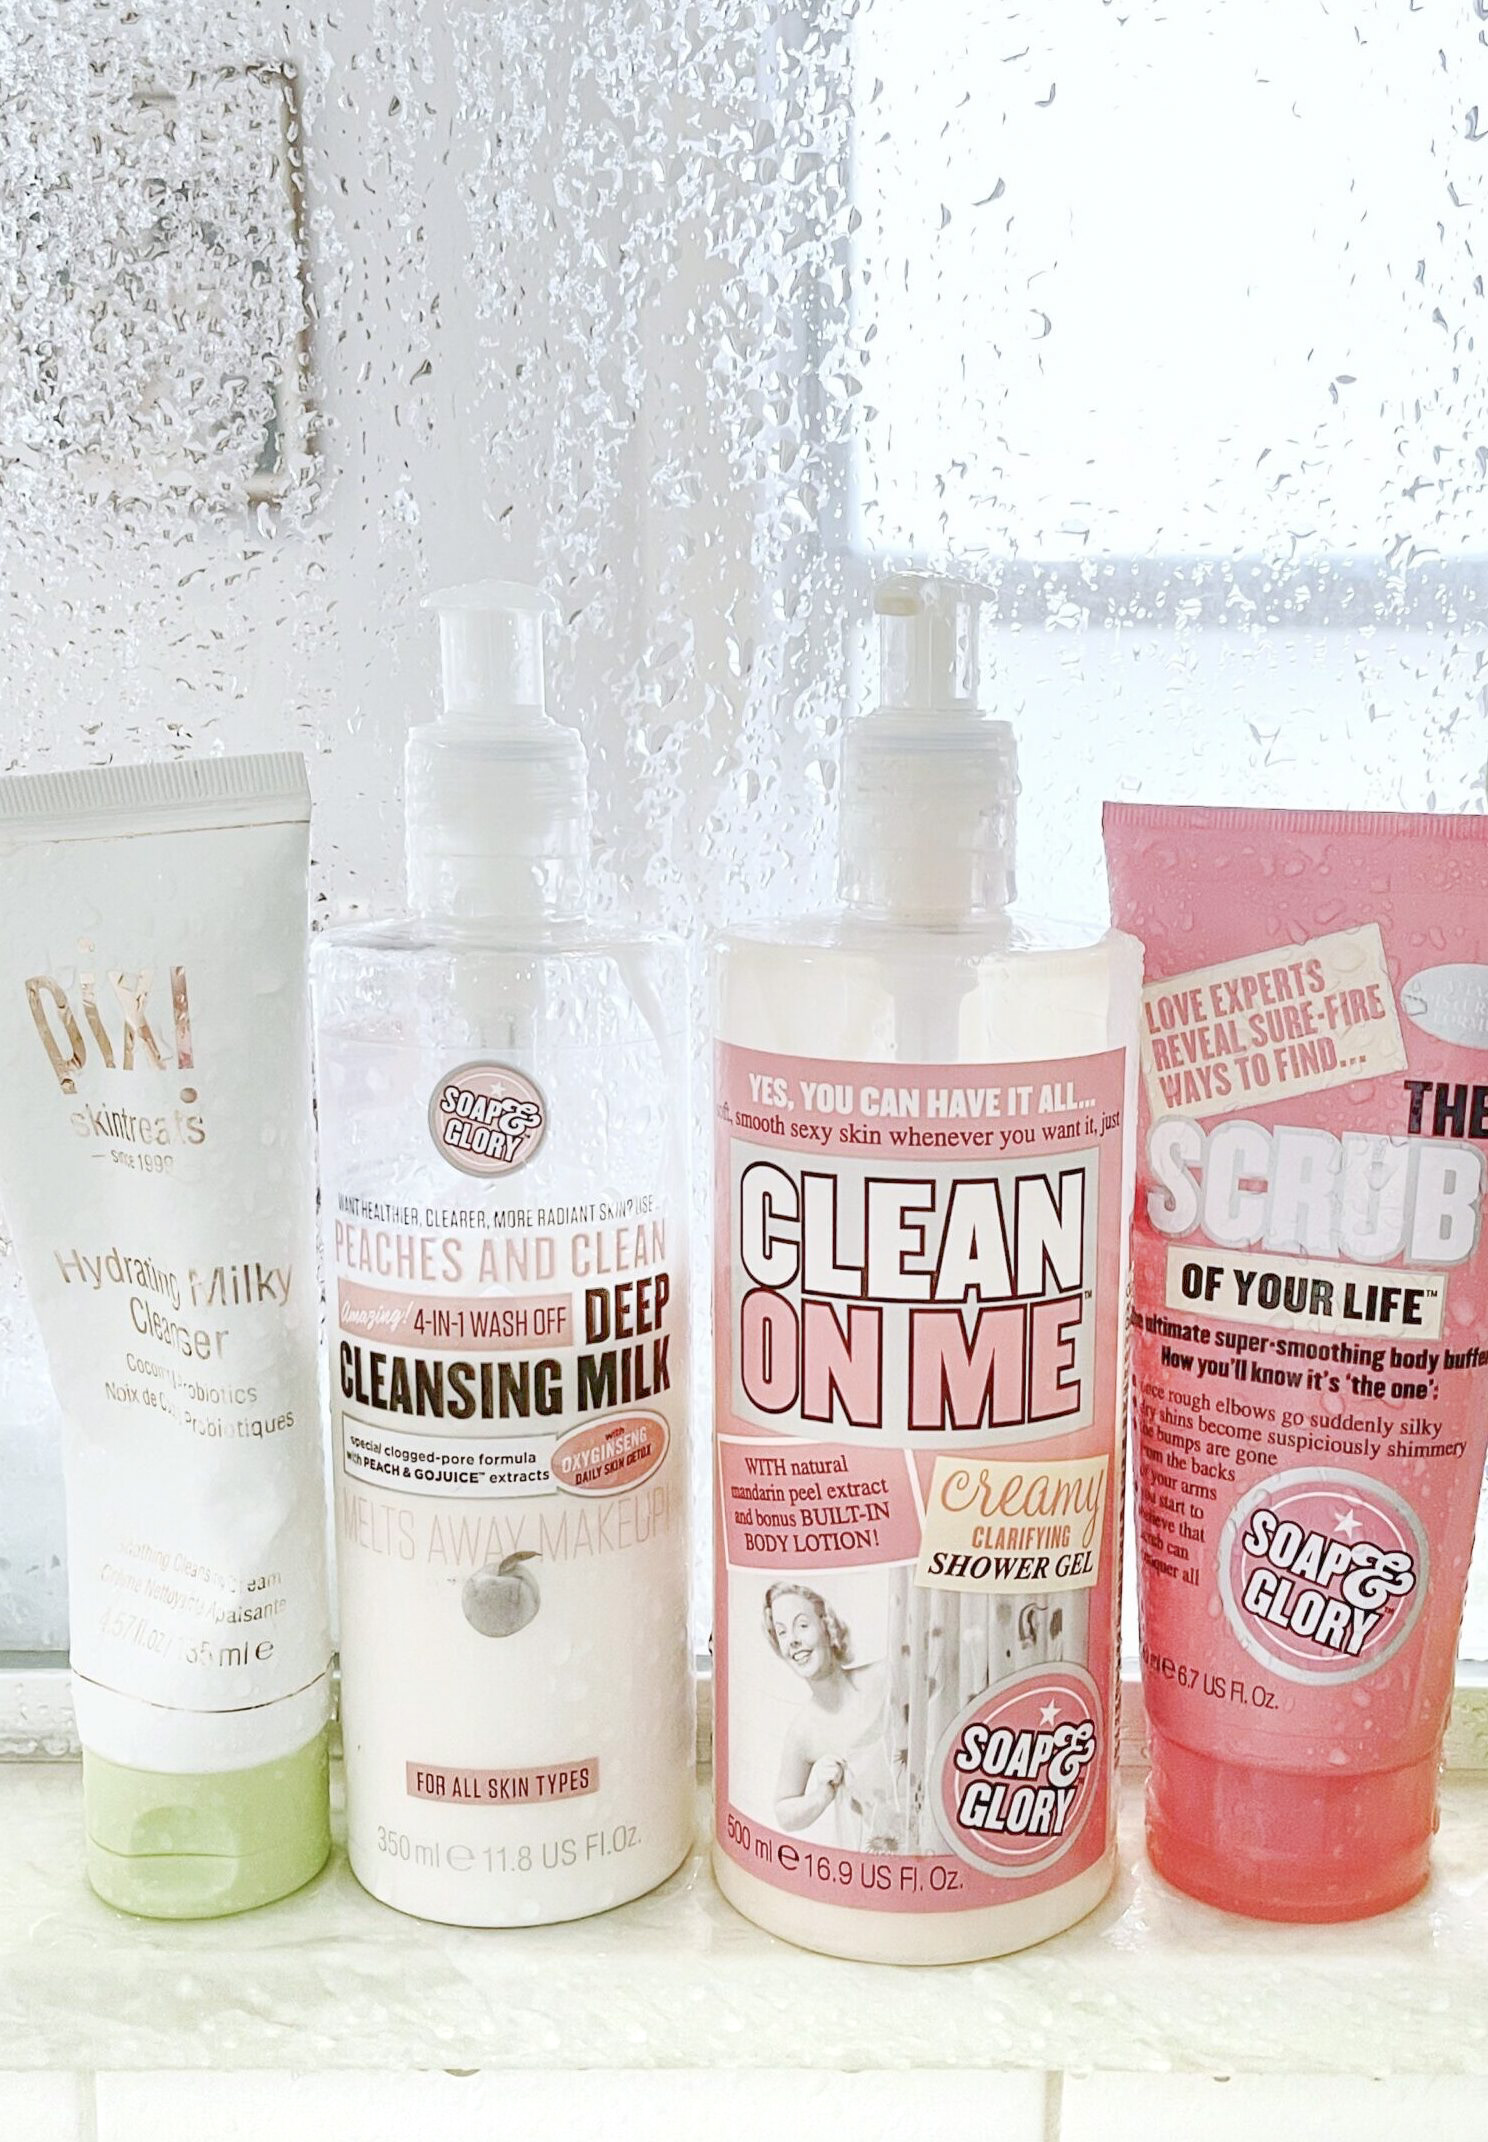 My Current Favorite Affordable Shower Scrub, Cleansers, and Body Wash